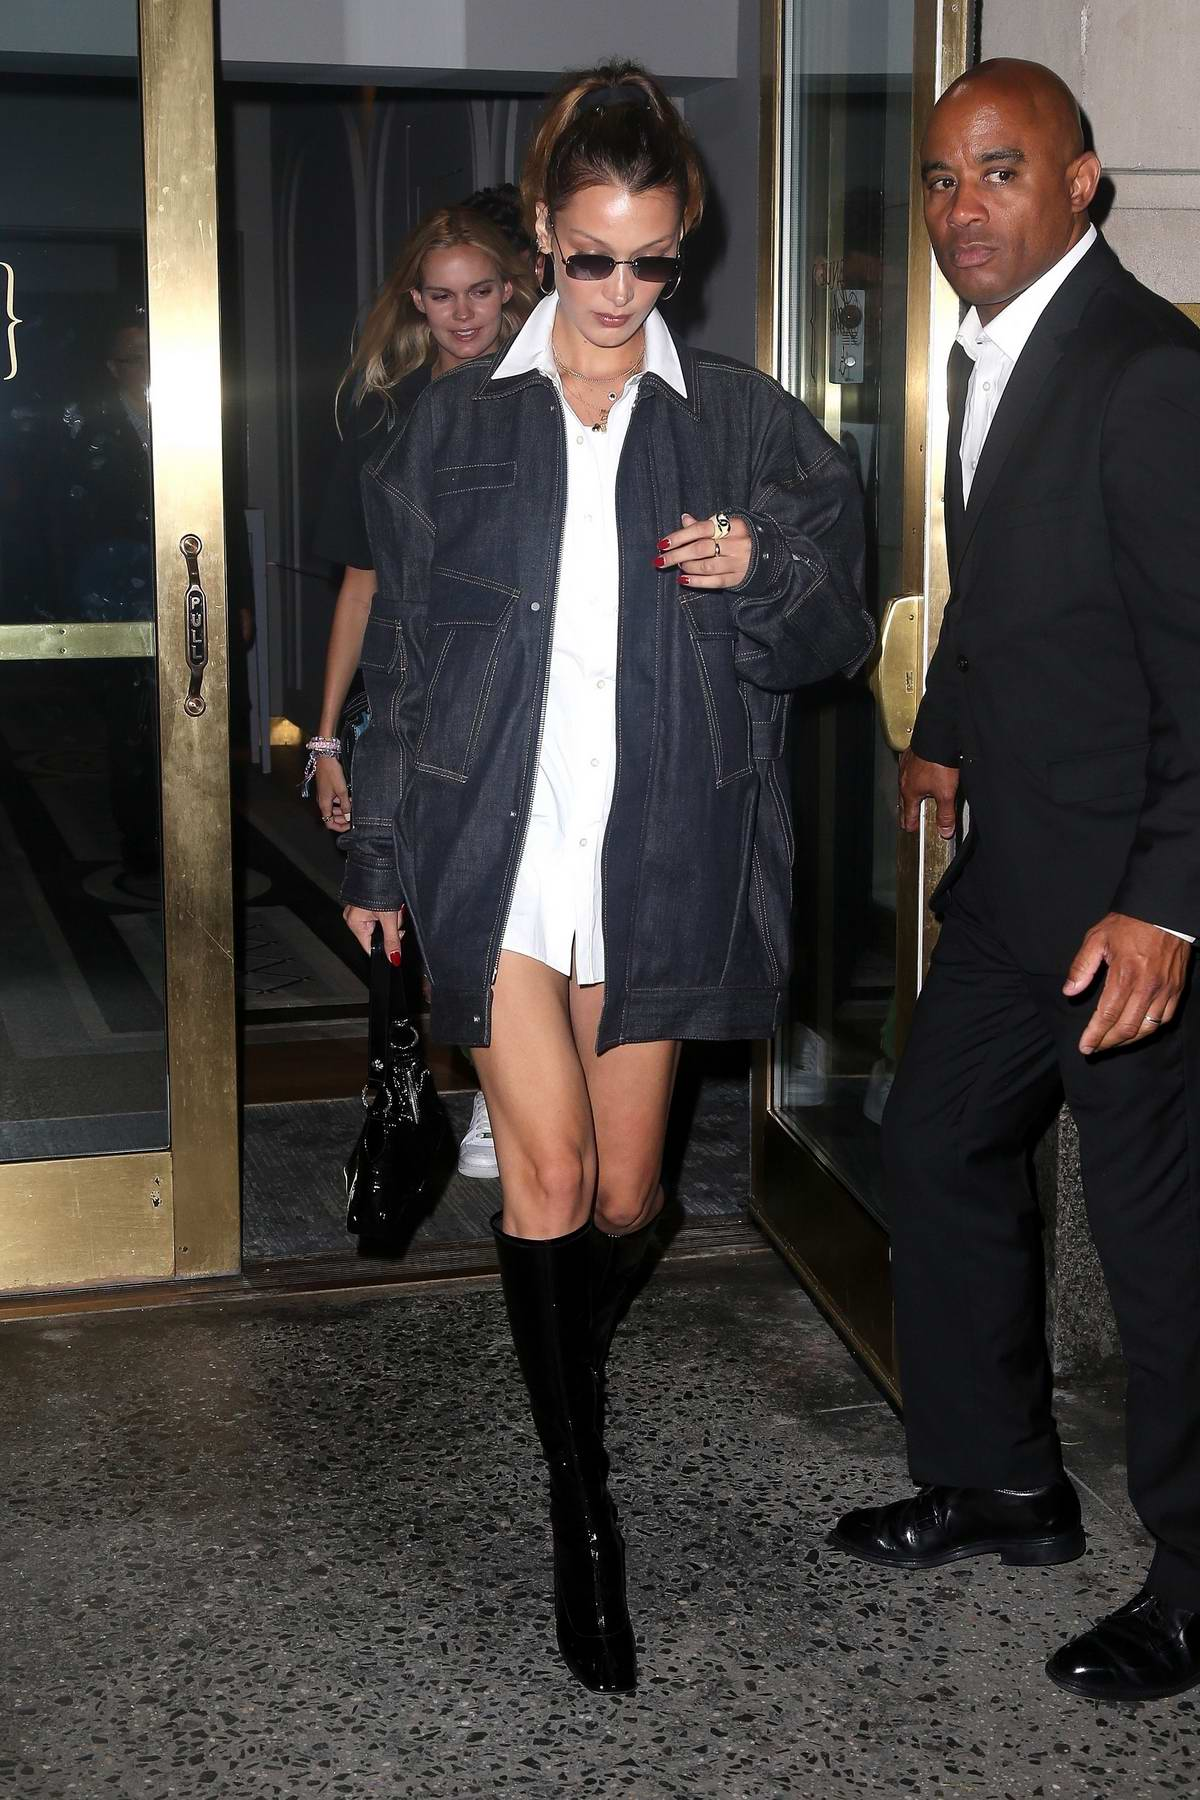 Bella Hadid rocks a denim jacket with knee high boots as she leaves dinner at L'avenue in New York City